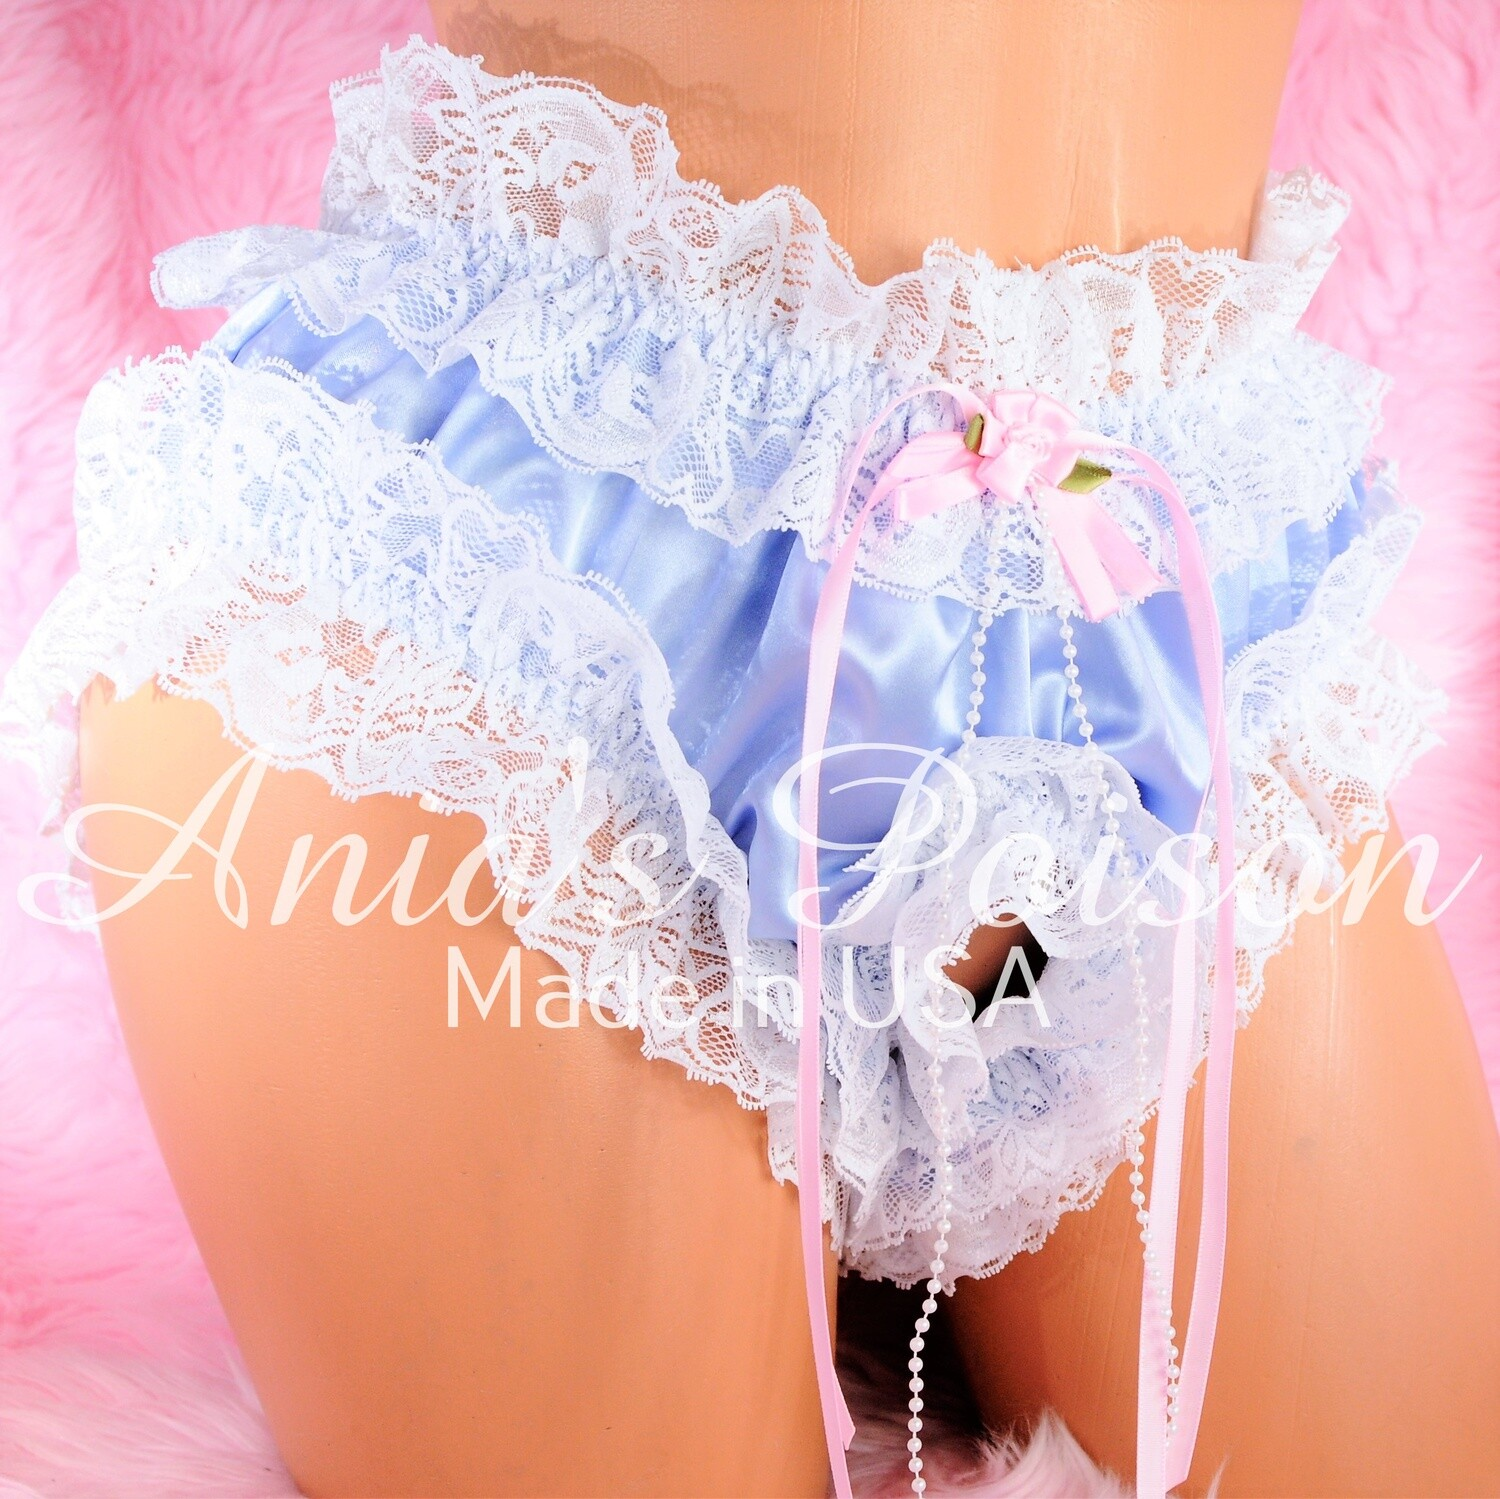 Sissy Spanking Maid satin high cut super frilly open crotch shiny crotchless unisex humiliation lace panties